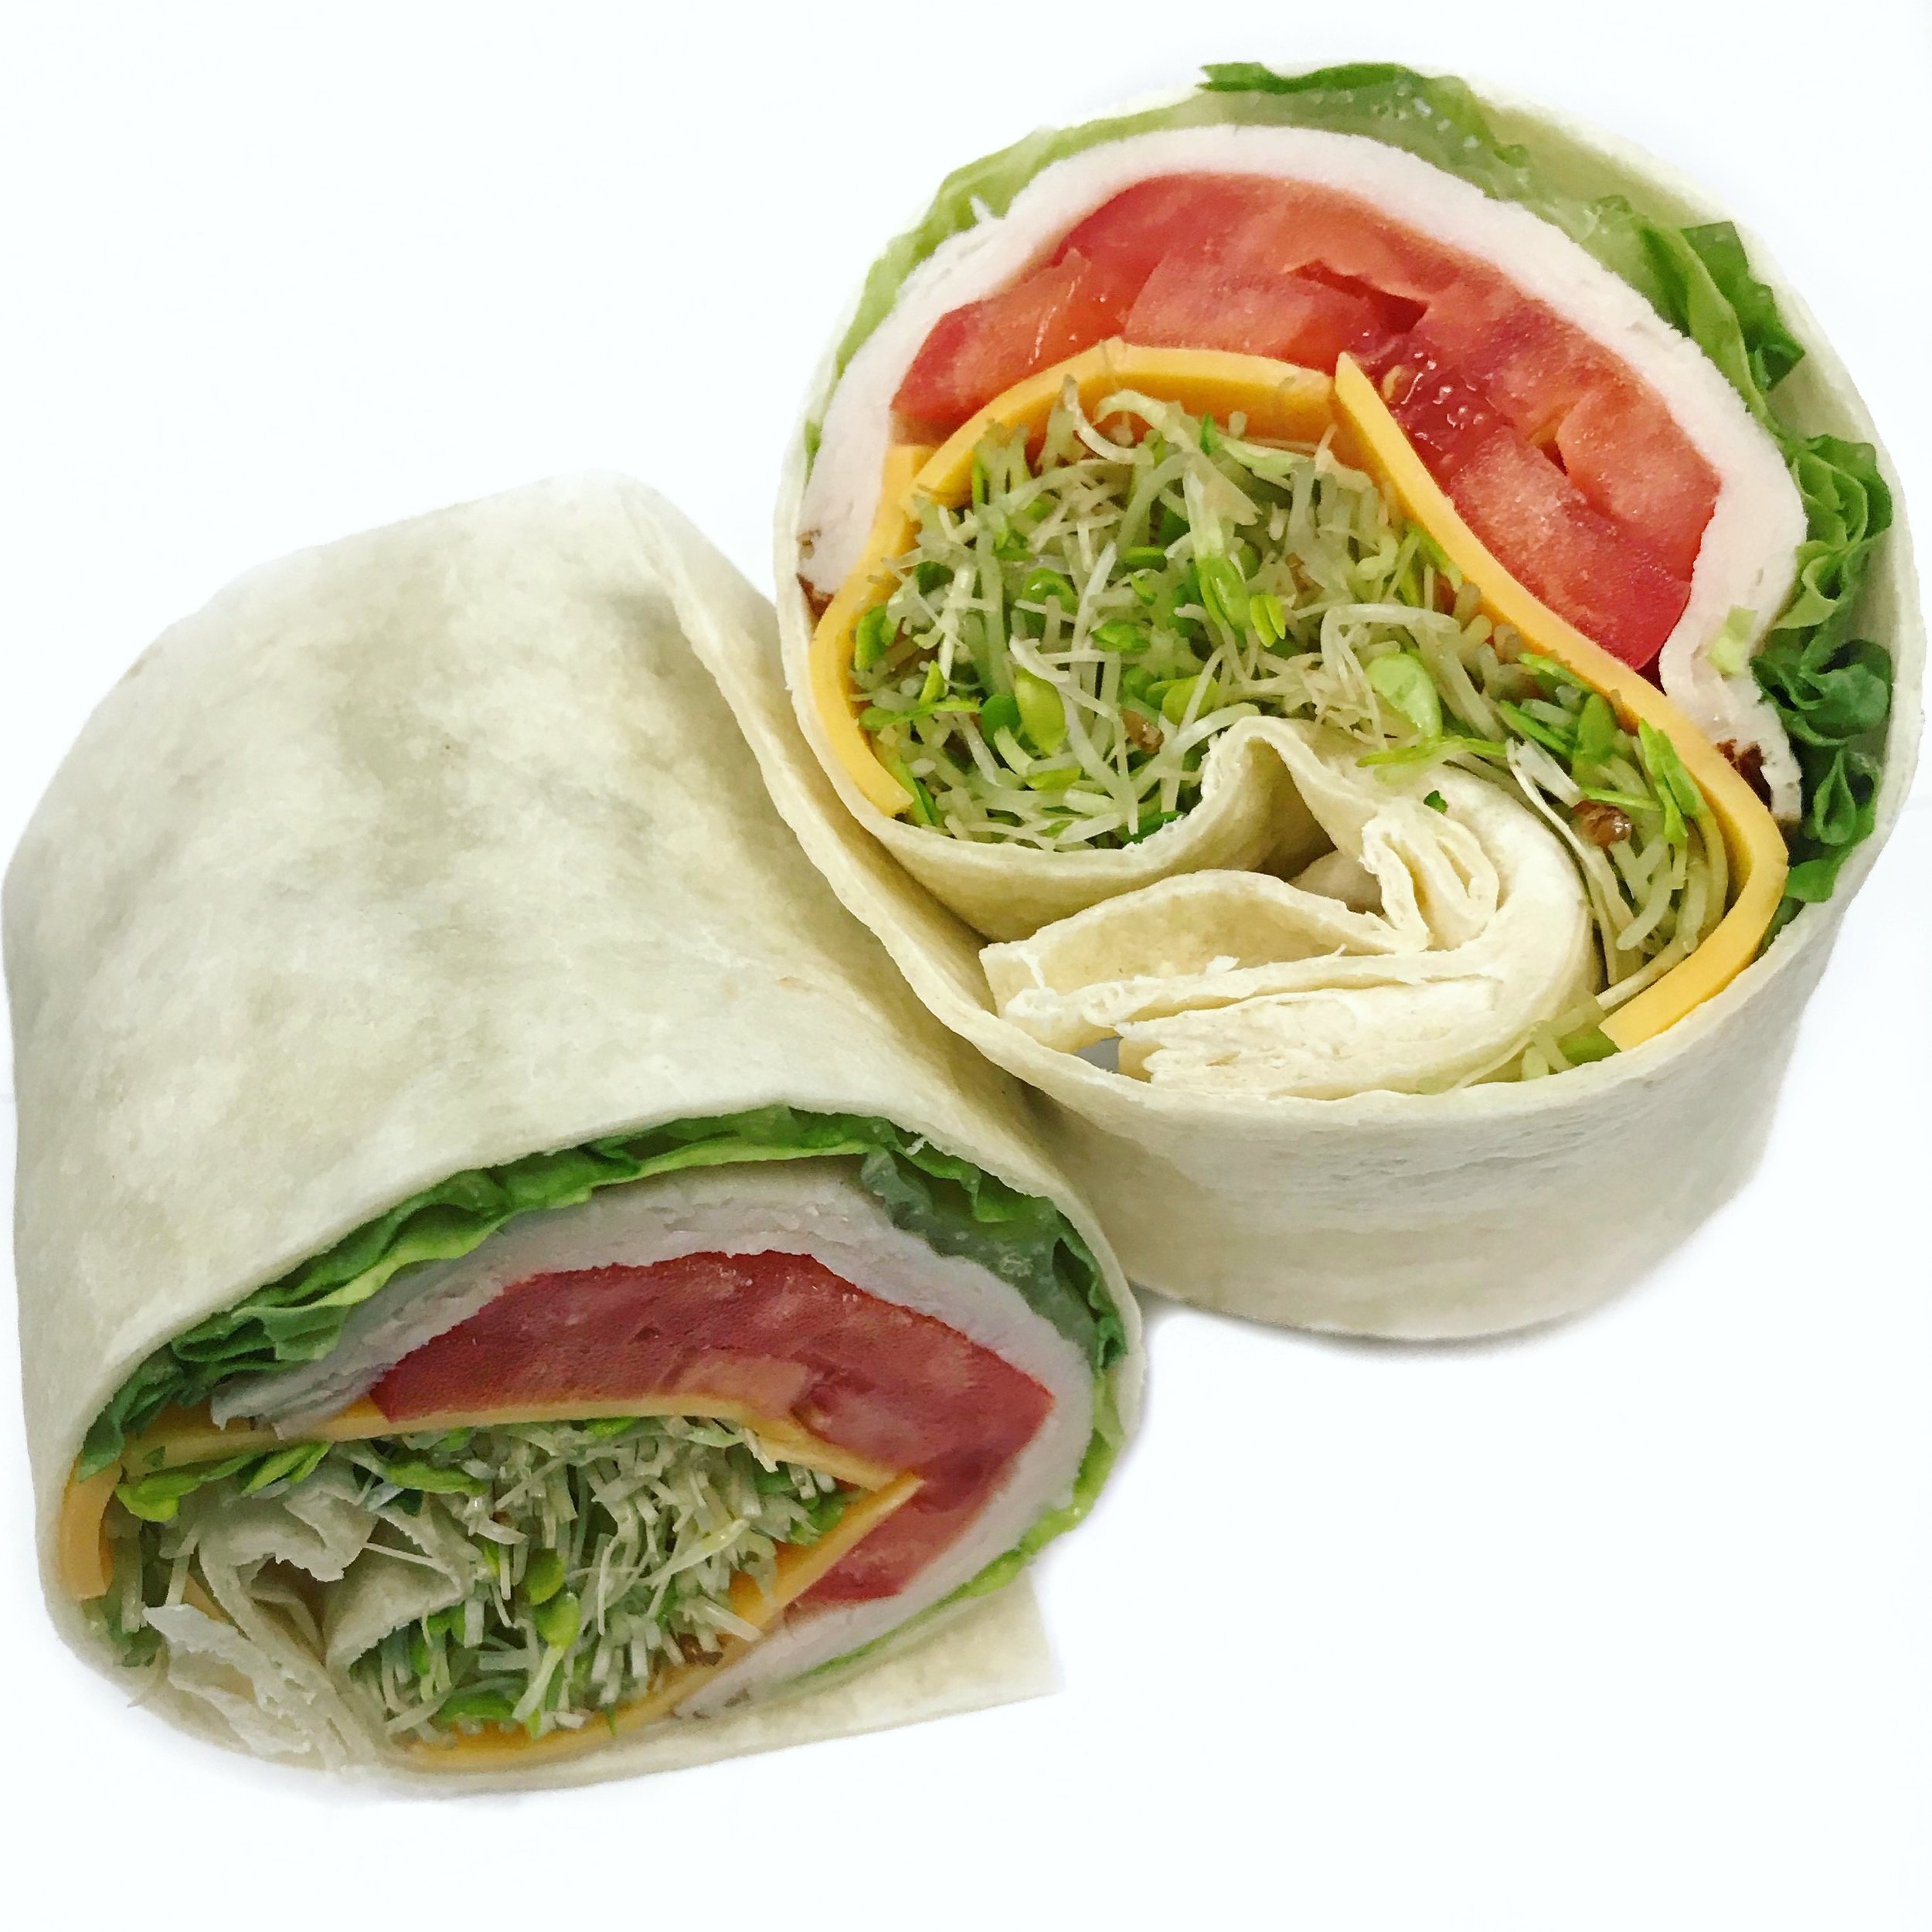 - Turkey Wrap Turkey Breast, Cheddar Cheese, Lettuce, Tomato, Alfalfa Sprouts wrapped in a Whole Wheat Tortilla